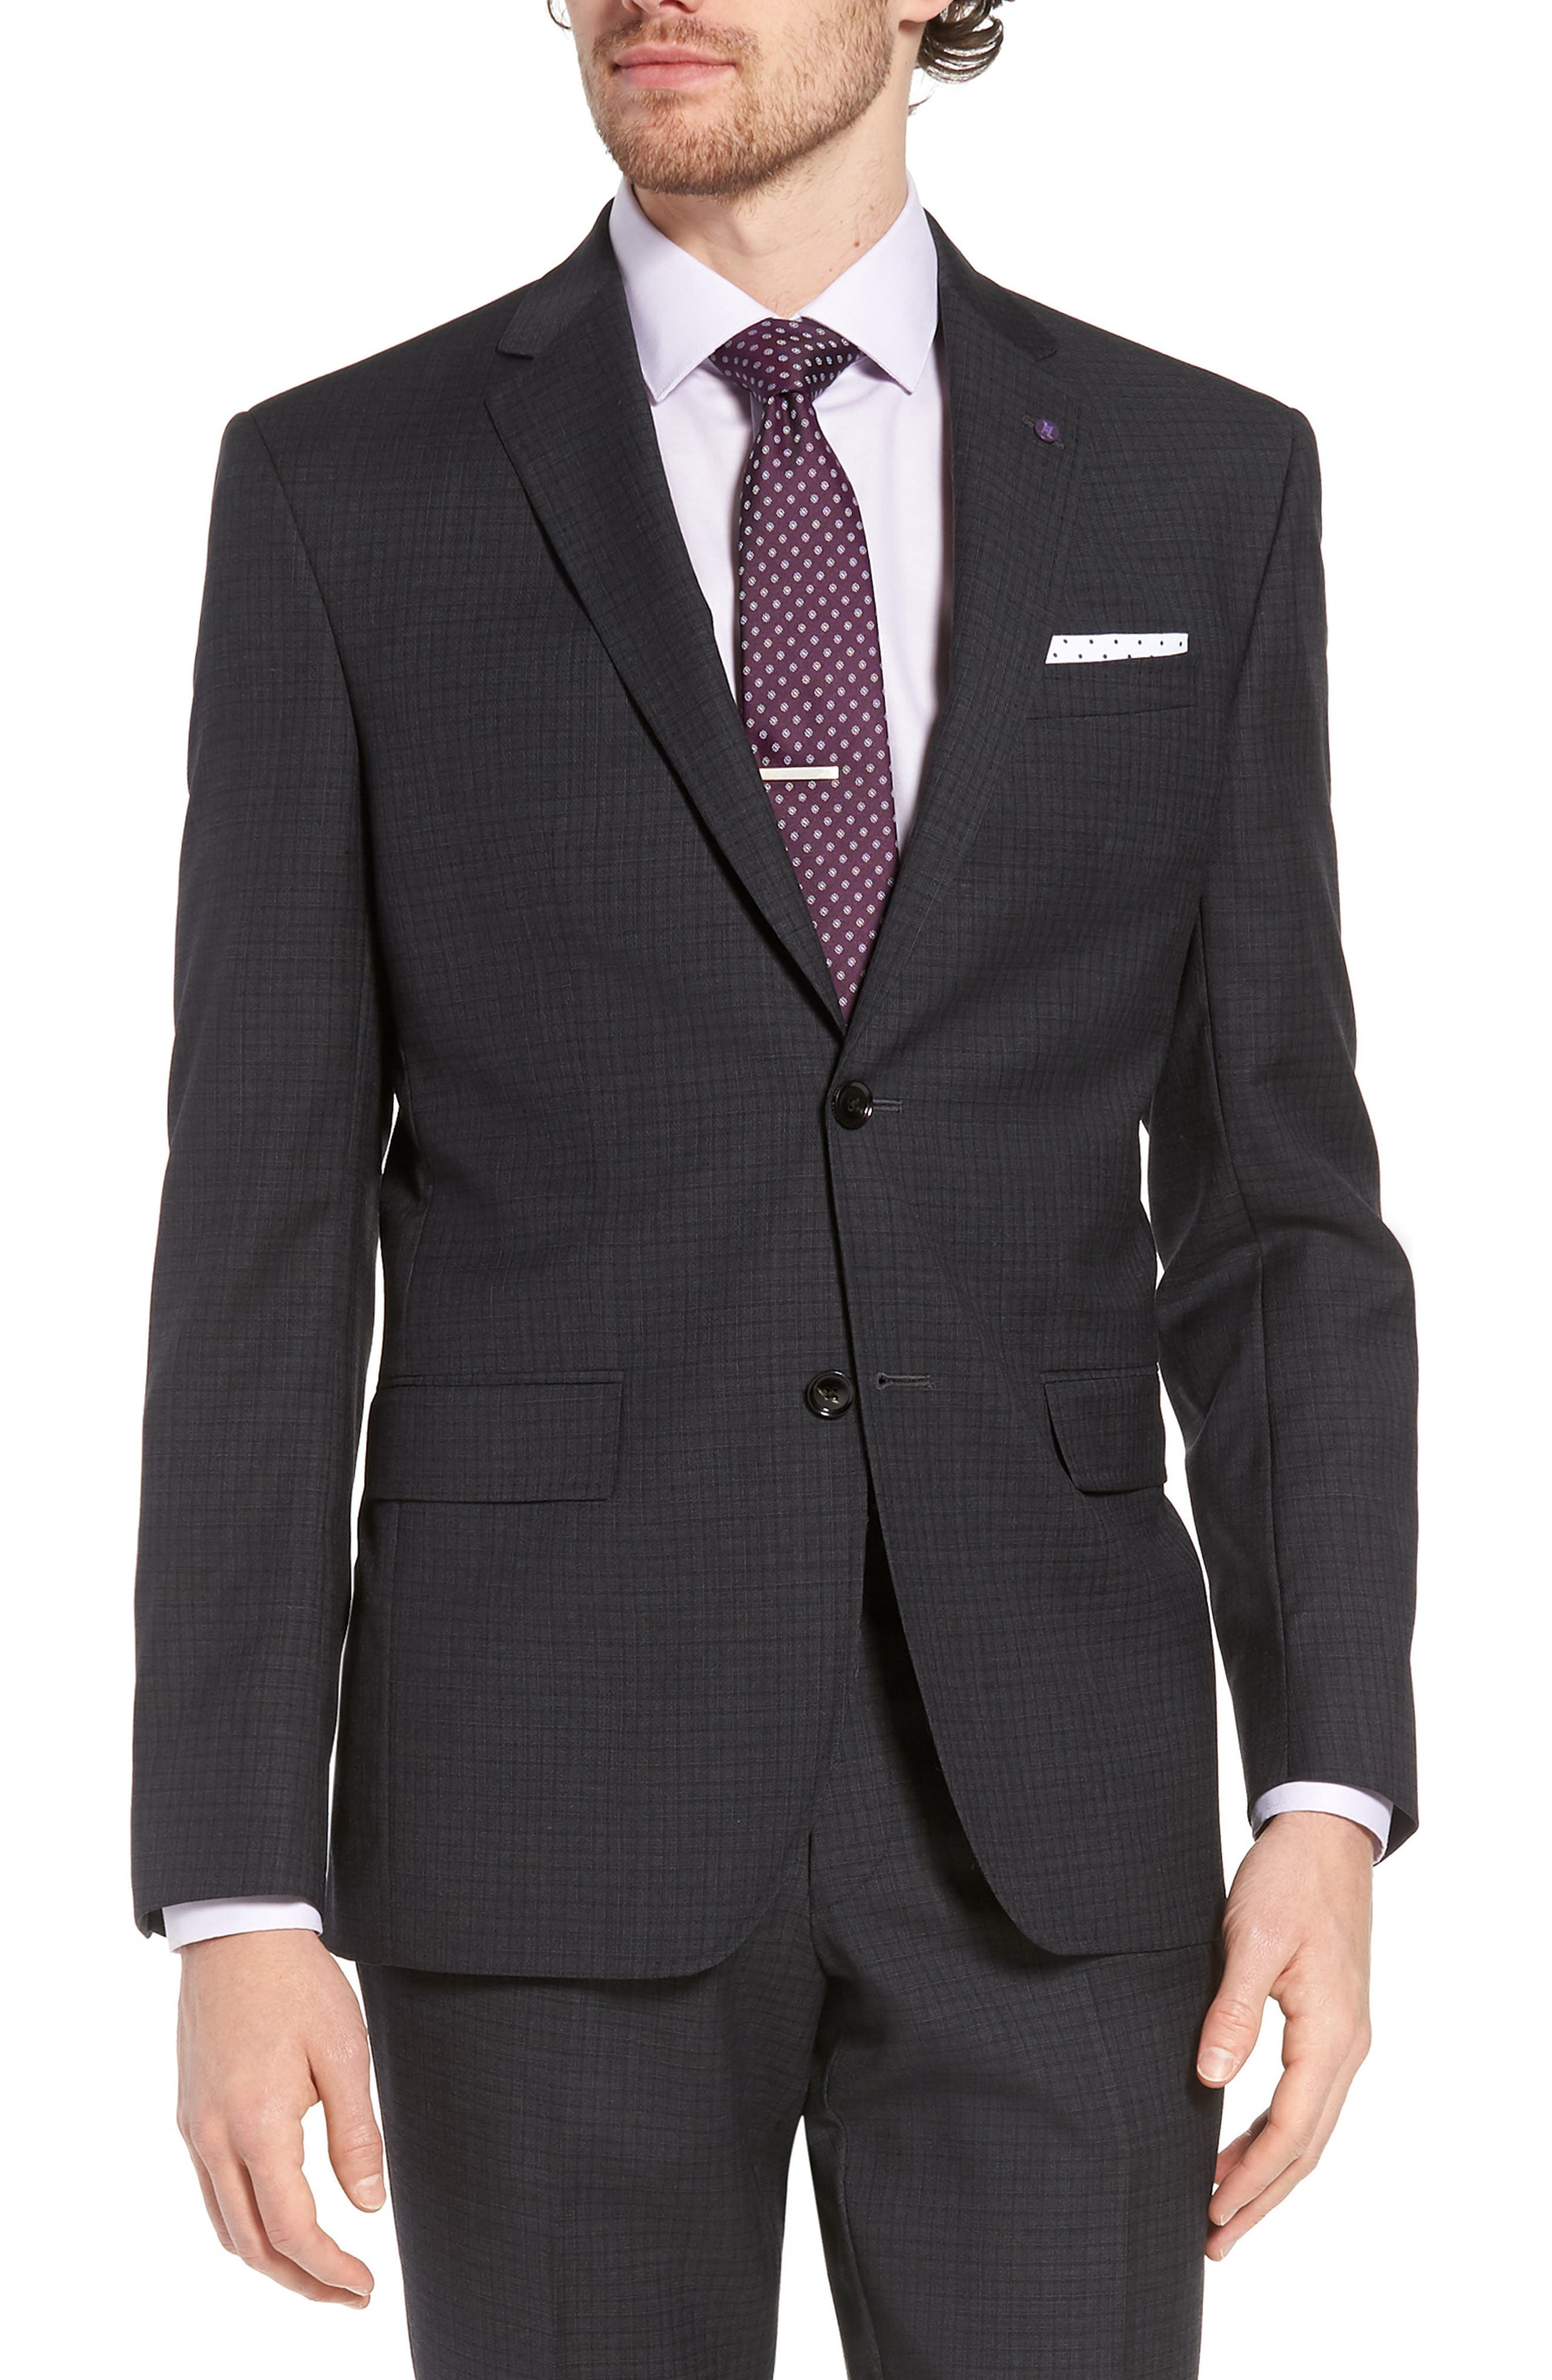 Jay Trim Fit Check Wool Suit,                             Alternate thumbnail 5, color,                             Charcoal